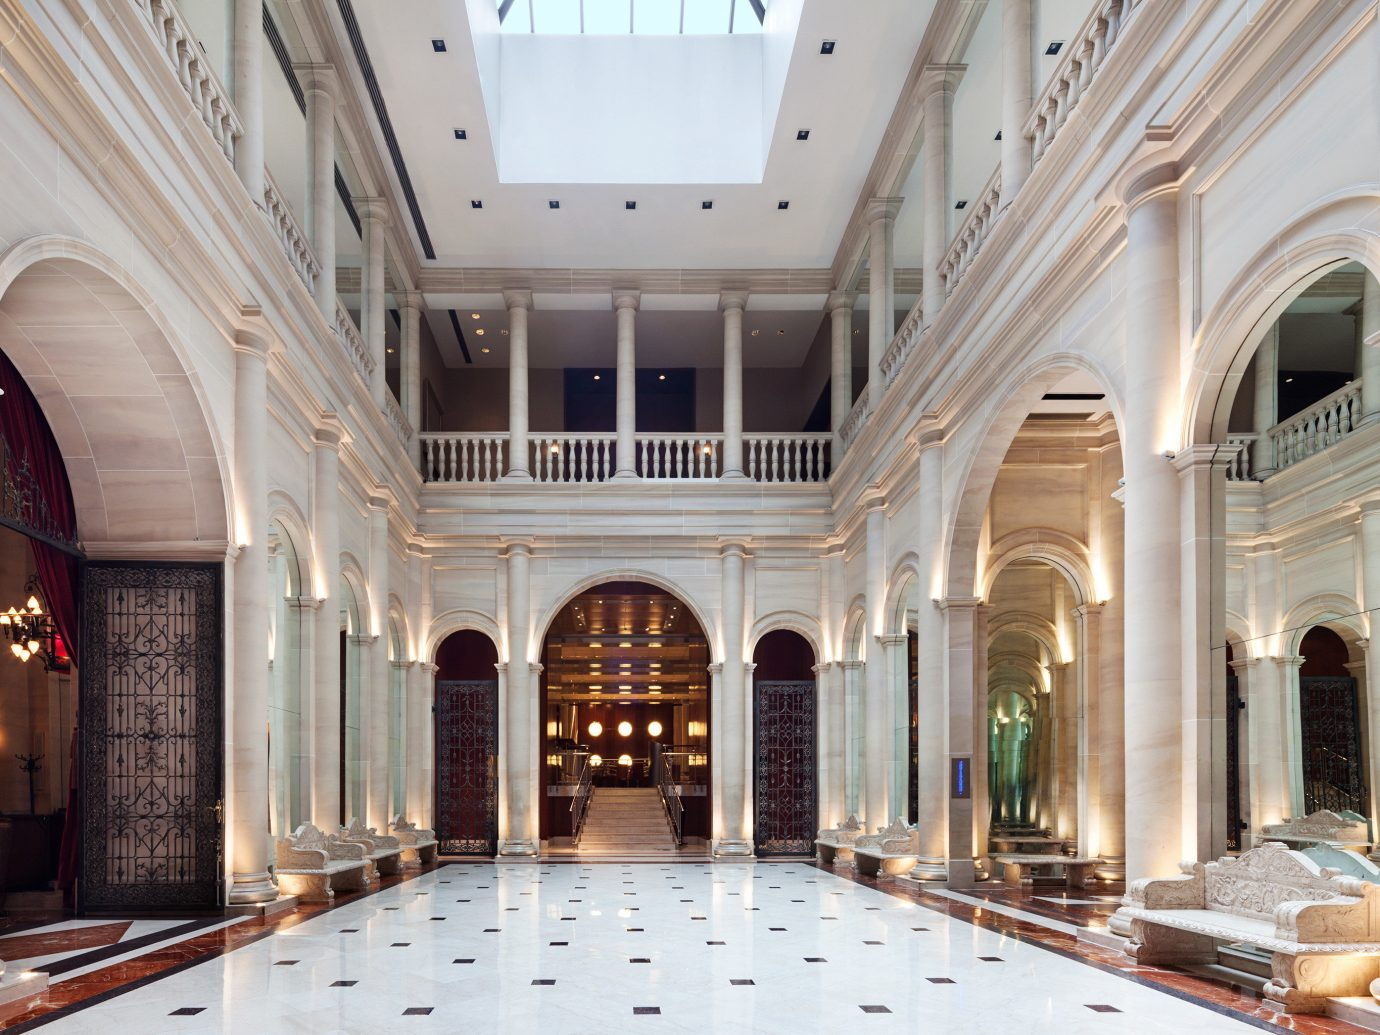 City Classic Family Travel Hotels Lobby window building estate palace Architecture stone mansion interior design hall facade ballroom synagogue tourist attraction court colonnade